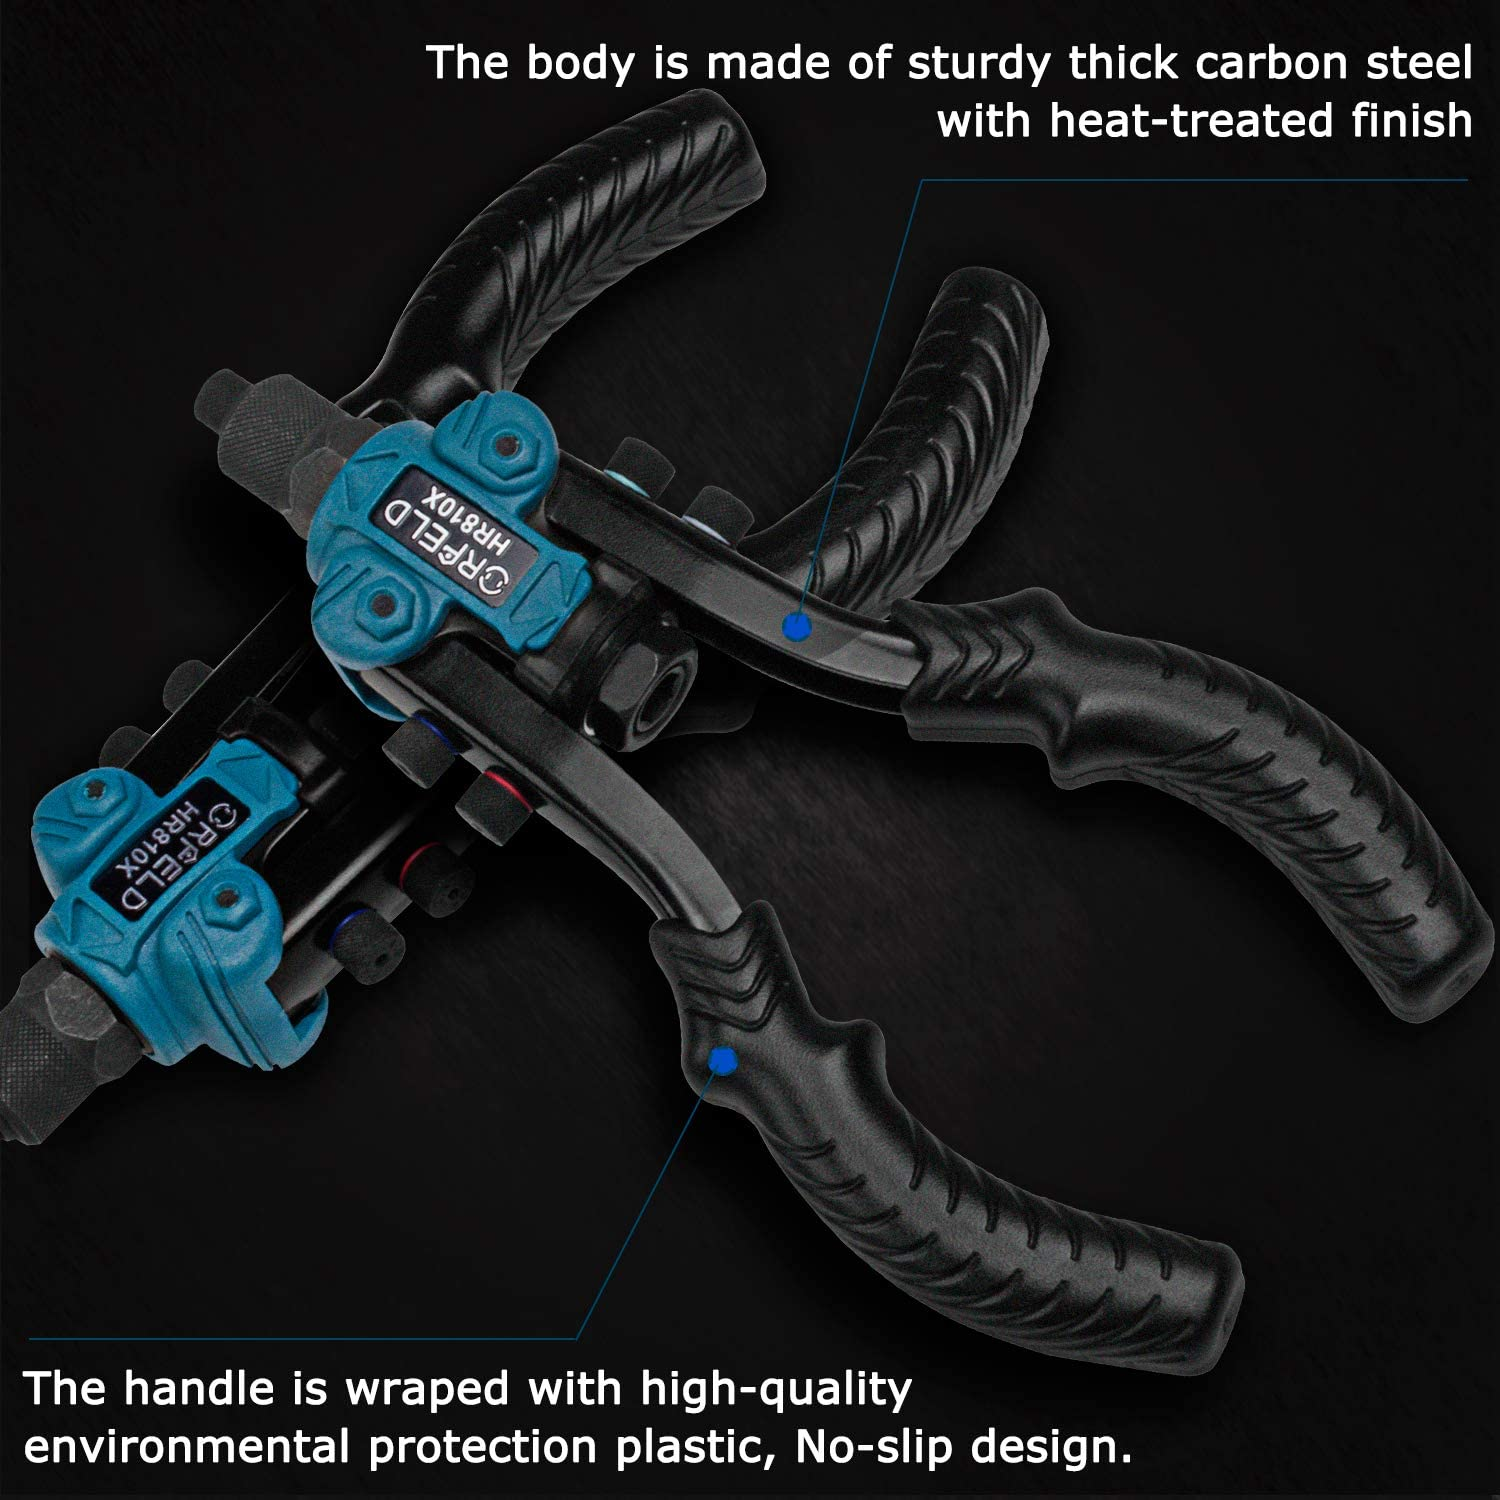 5 in 1 Hand Riveter. 11inch Heavy Duty Rivet Tool with 5 Replaceable Nosepieces 50pcs Rivets ORFELD Hand Rivet Gun